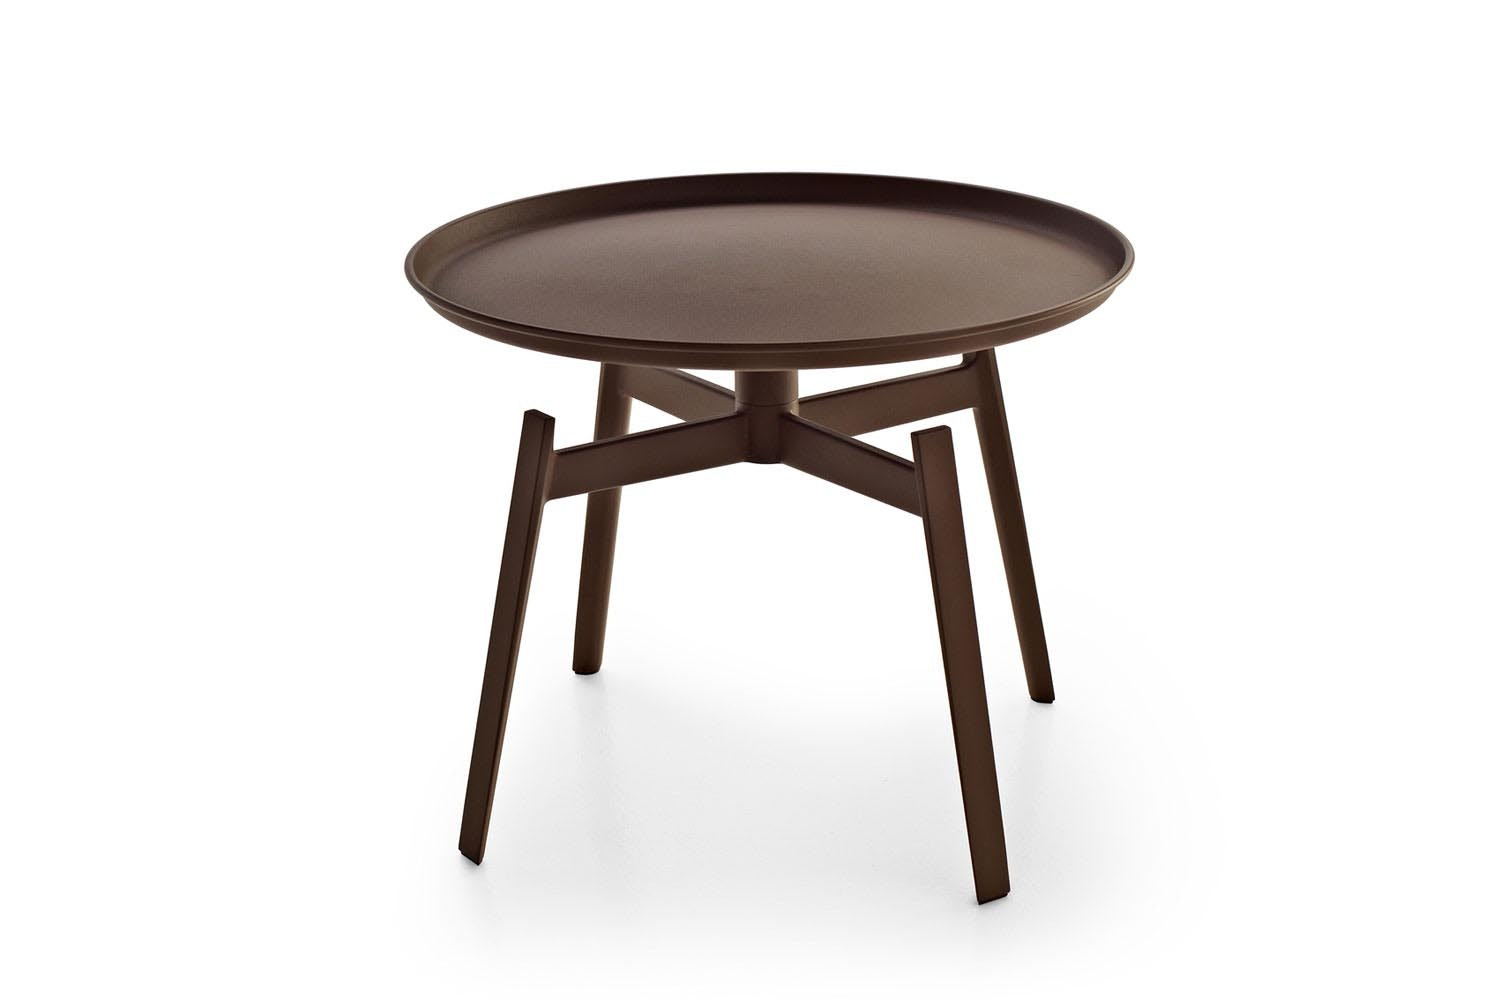 Husk Outdoor Side Table by Patricia Urquiola for B&B Italia